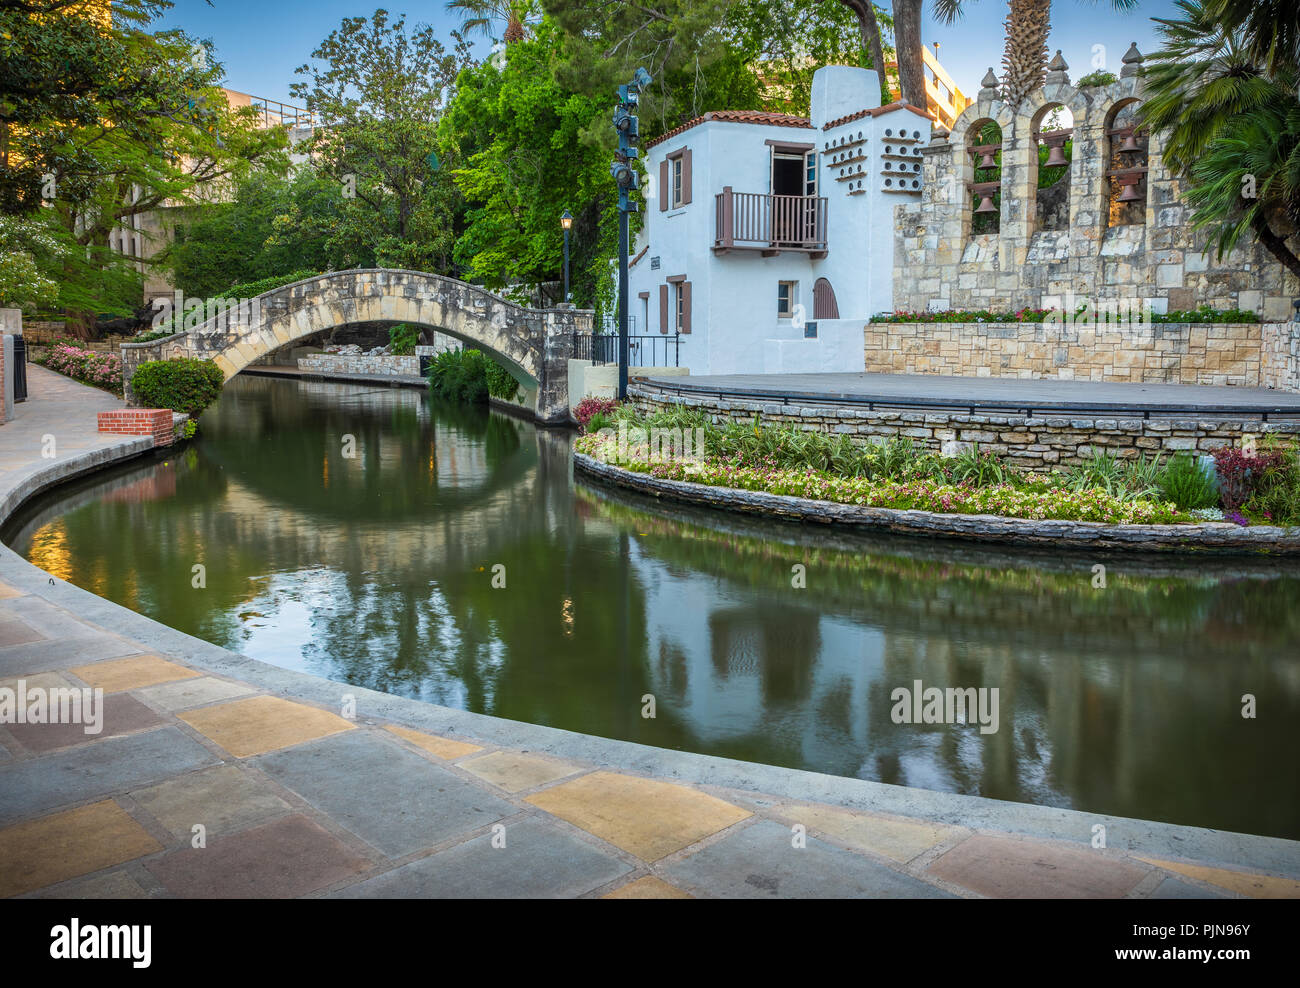 La Villita Historic Arts Village is an art community in downtown San Antonio, Texas, United States. - Stock Image